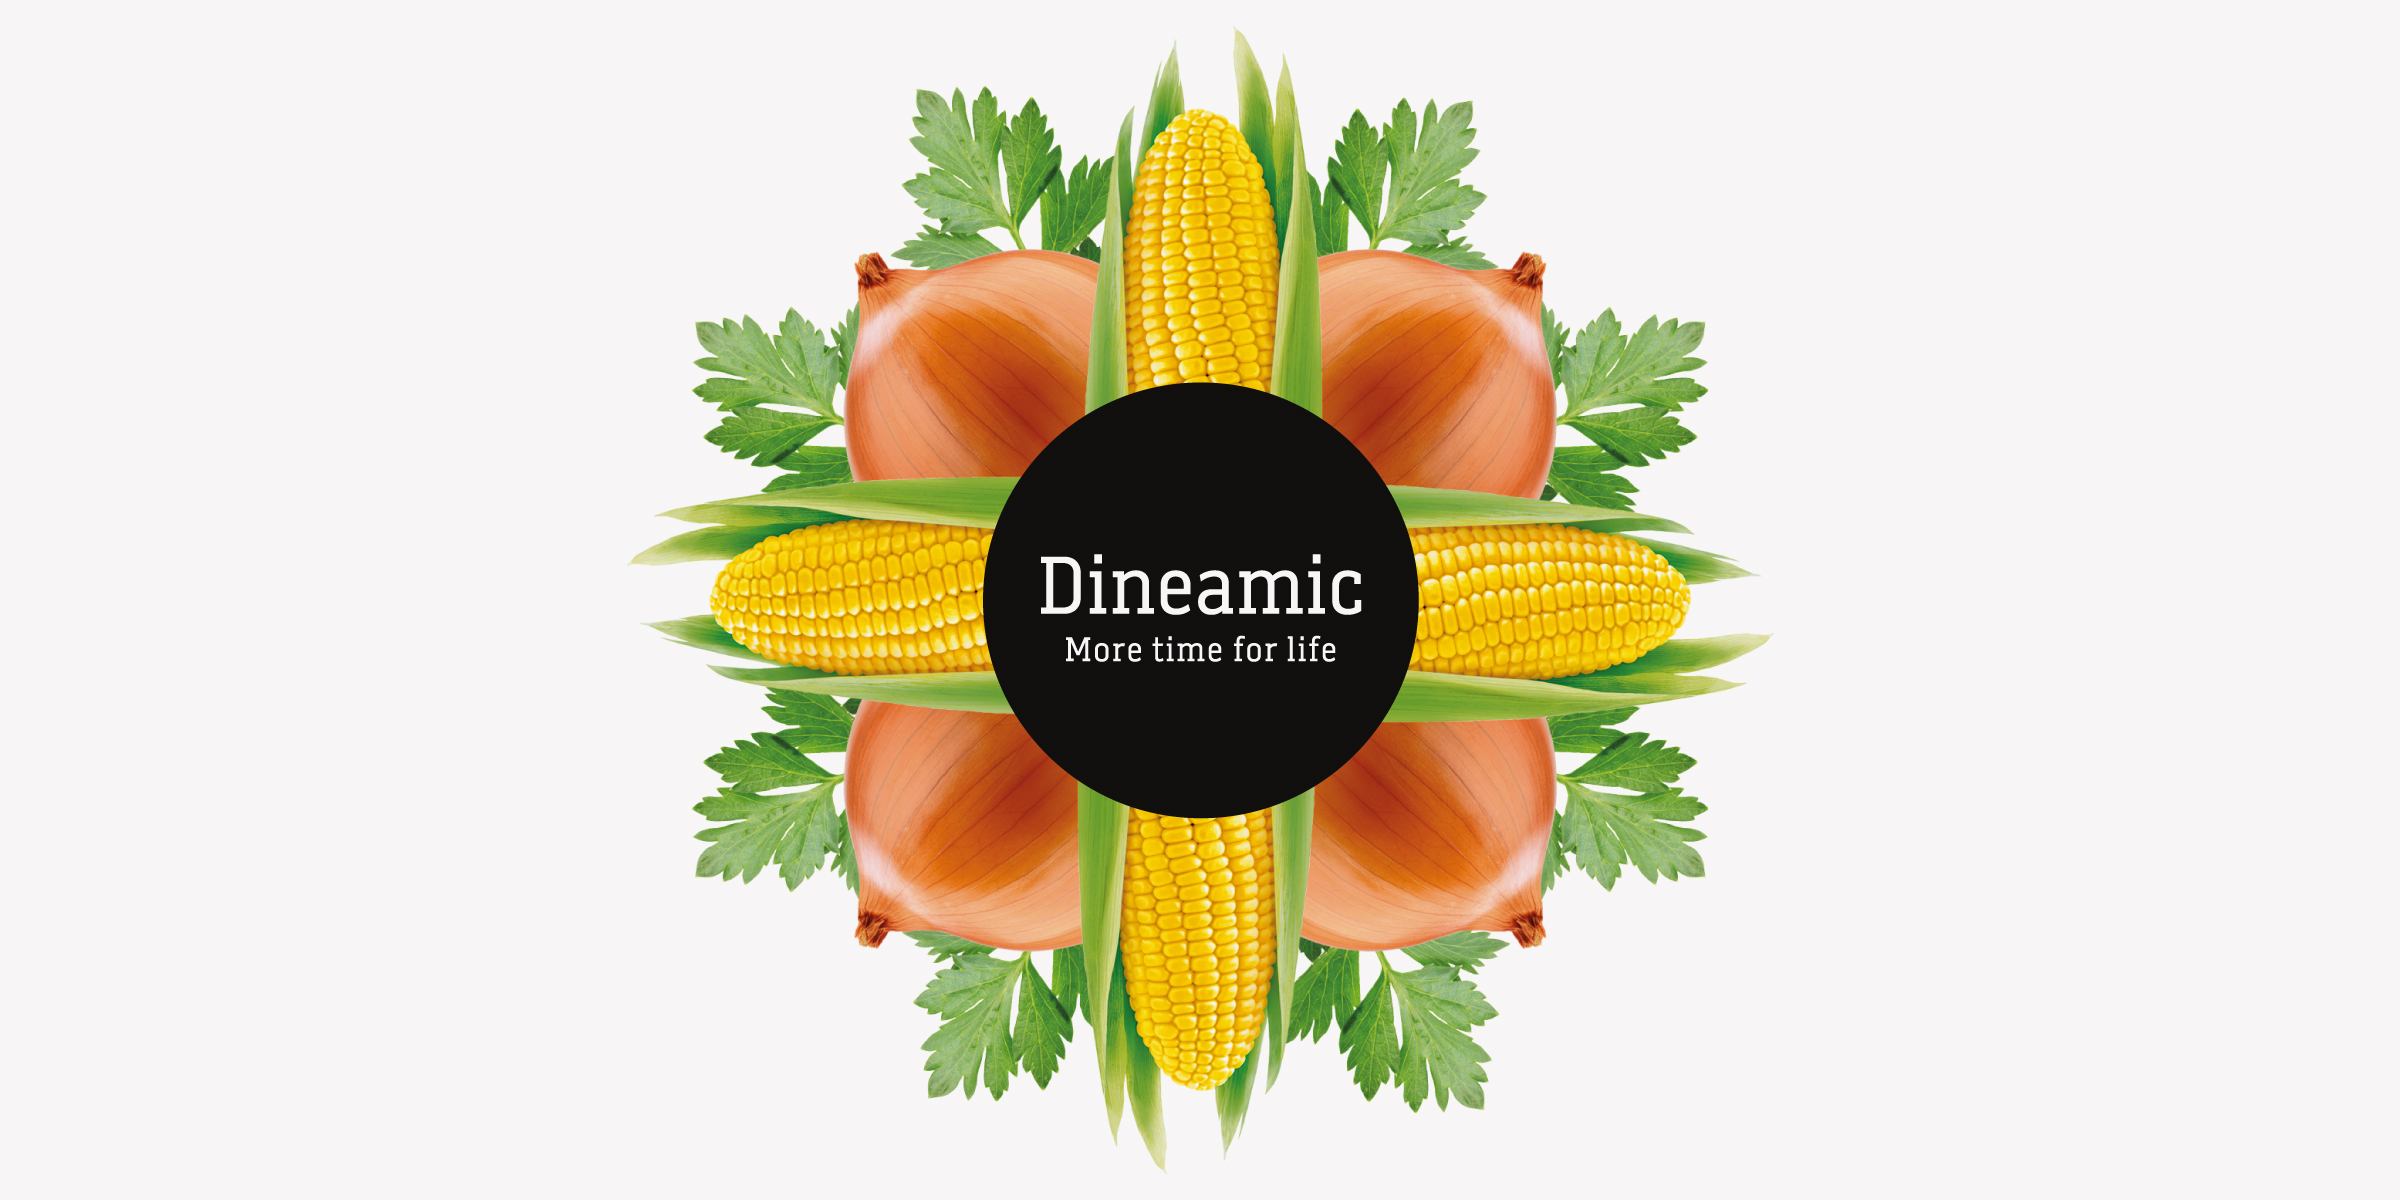 Davidson Branding FMCG Dineamic Packaging Visual Language Kaleidoscope Corn Onion Banner